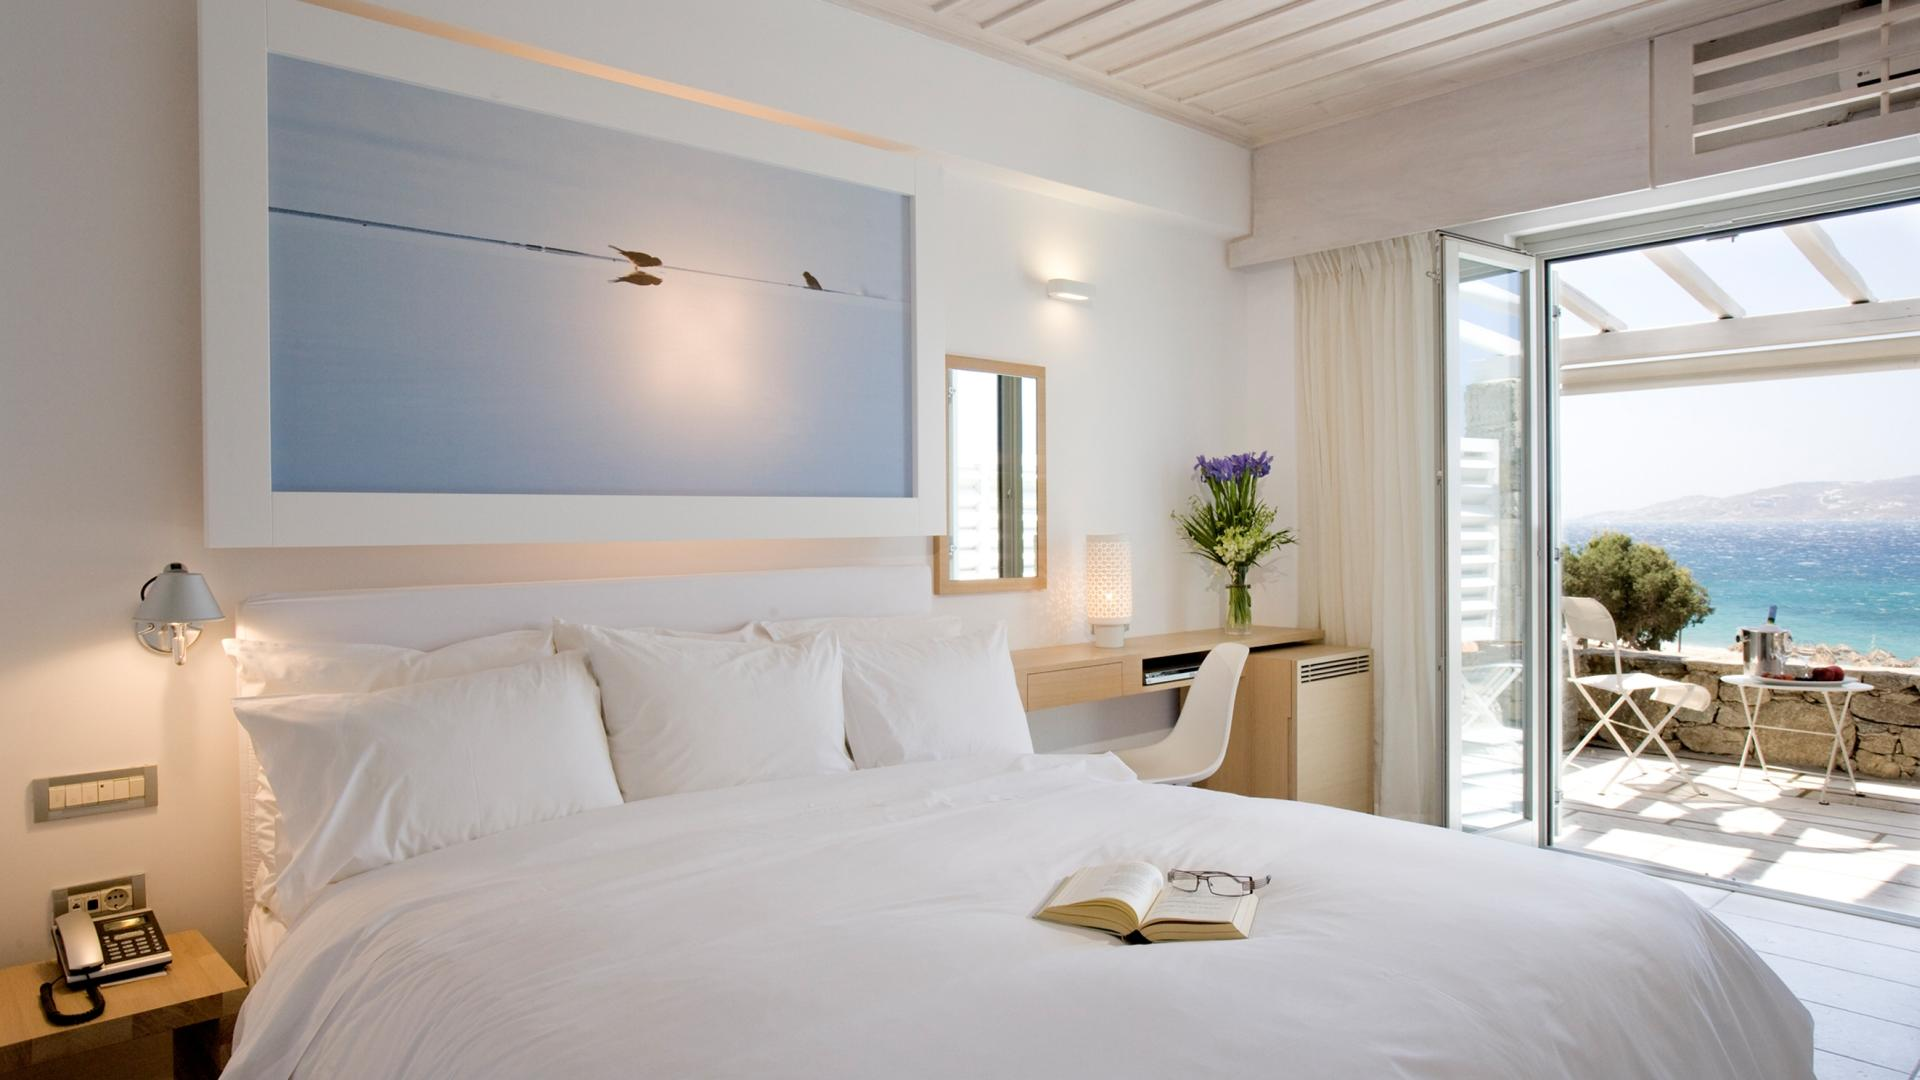 Grace_Mykonos_Deluxe_Room_With_Plunge_Pool